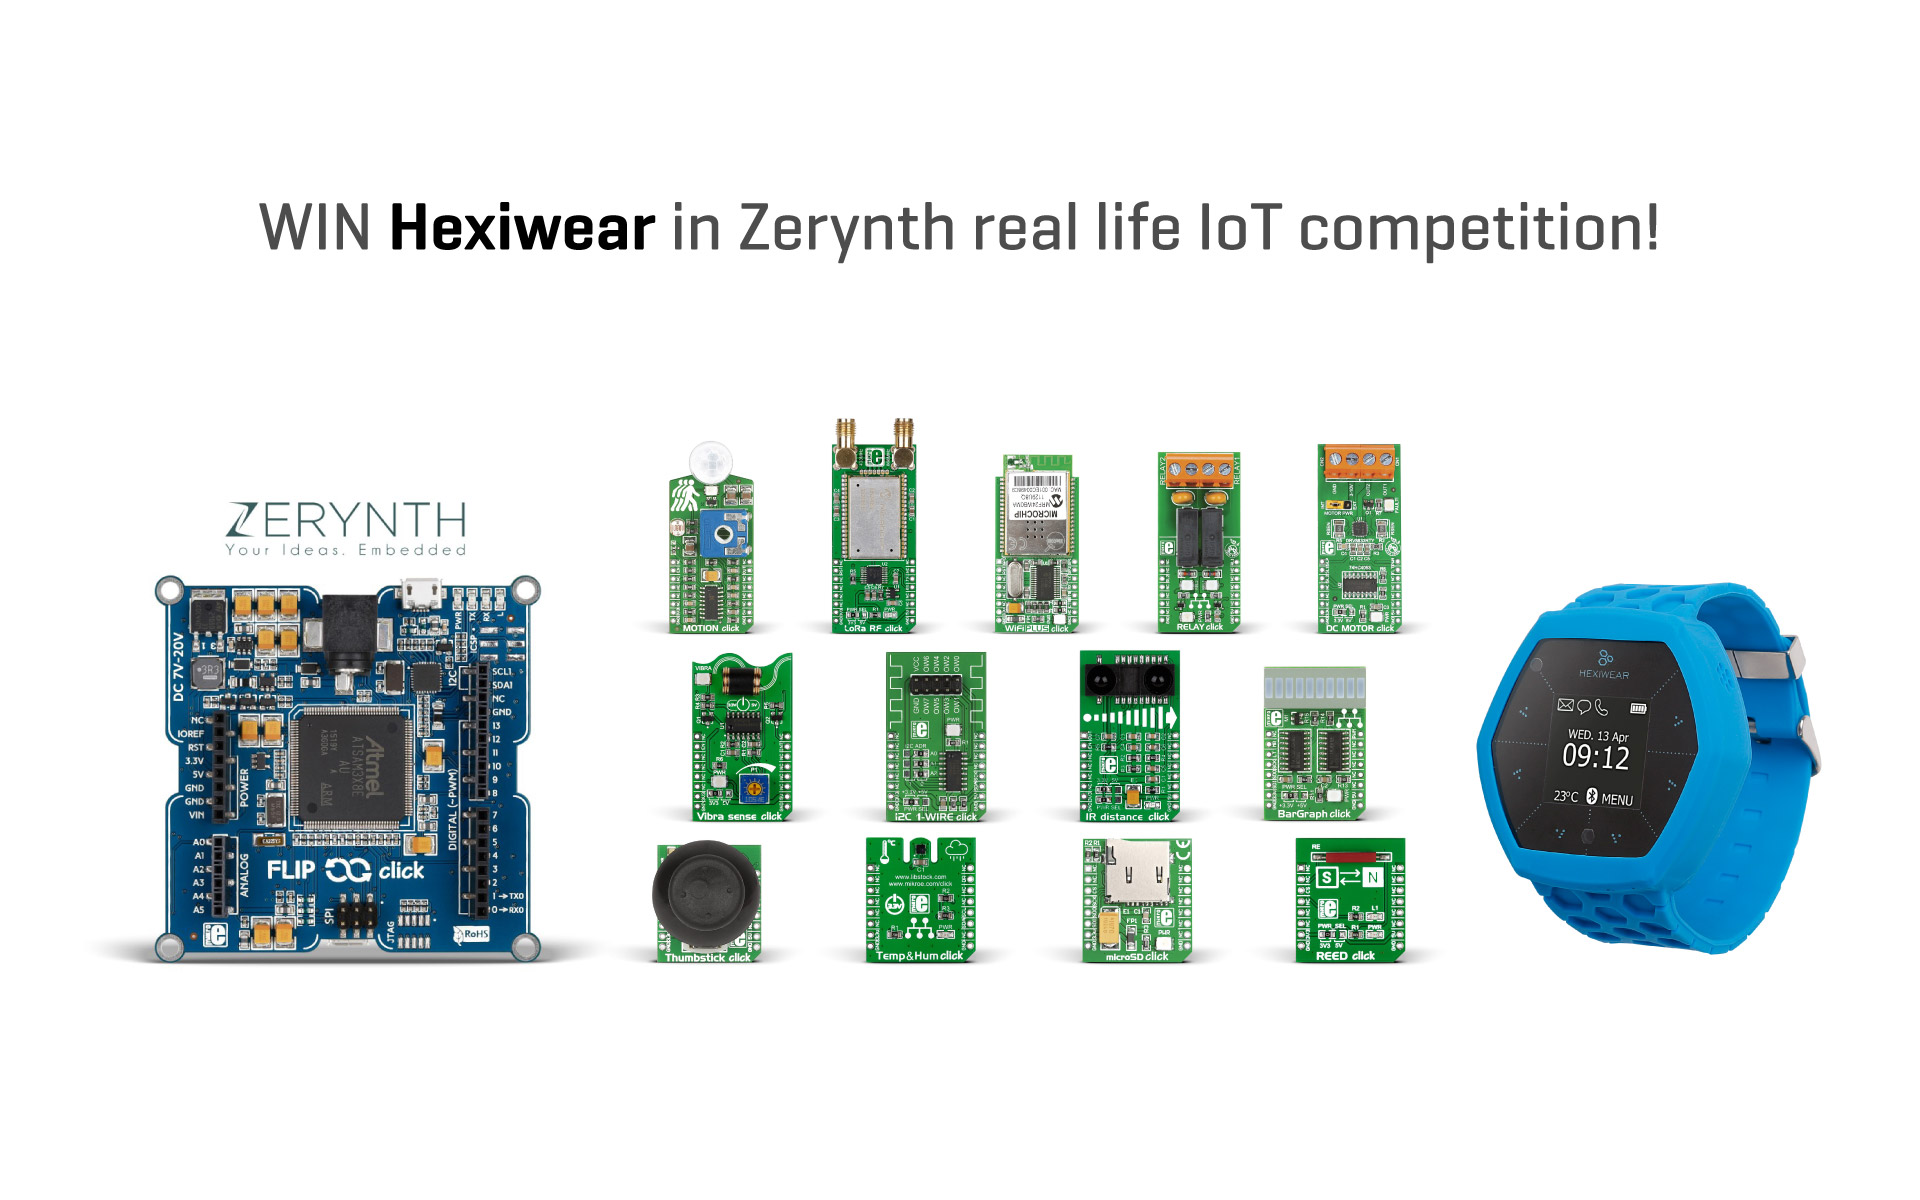 Win Hexiwear in the Zerynth IoT competition